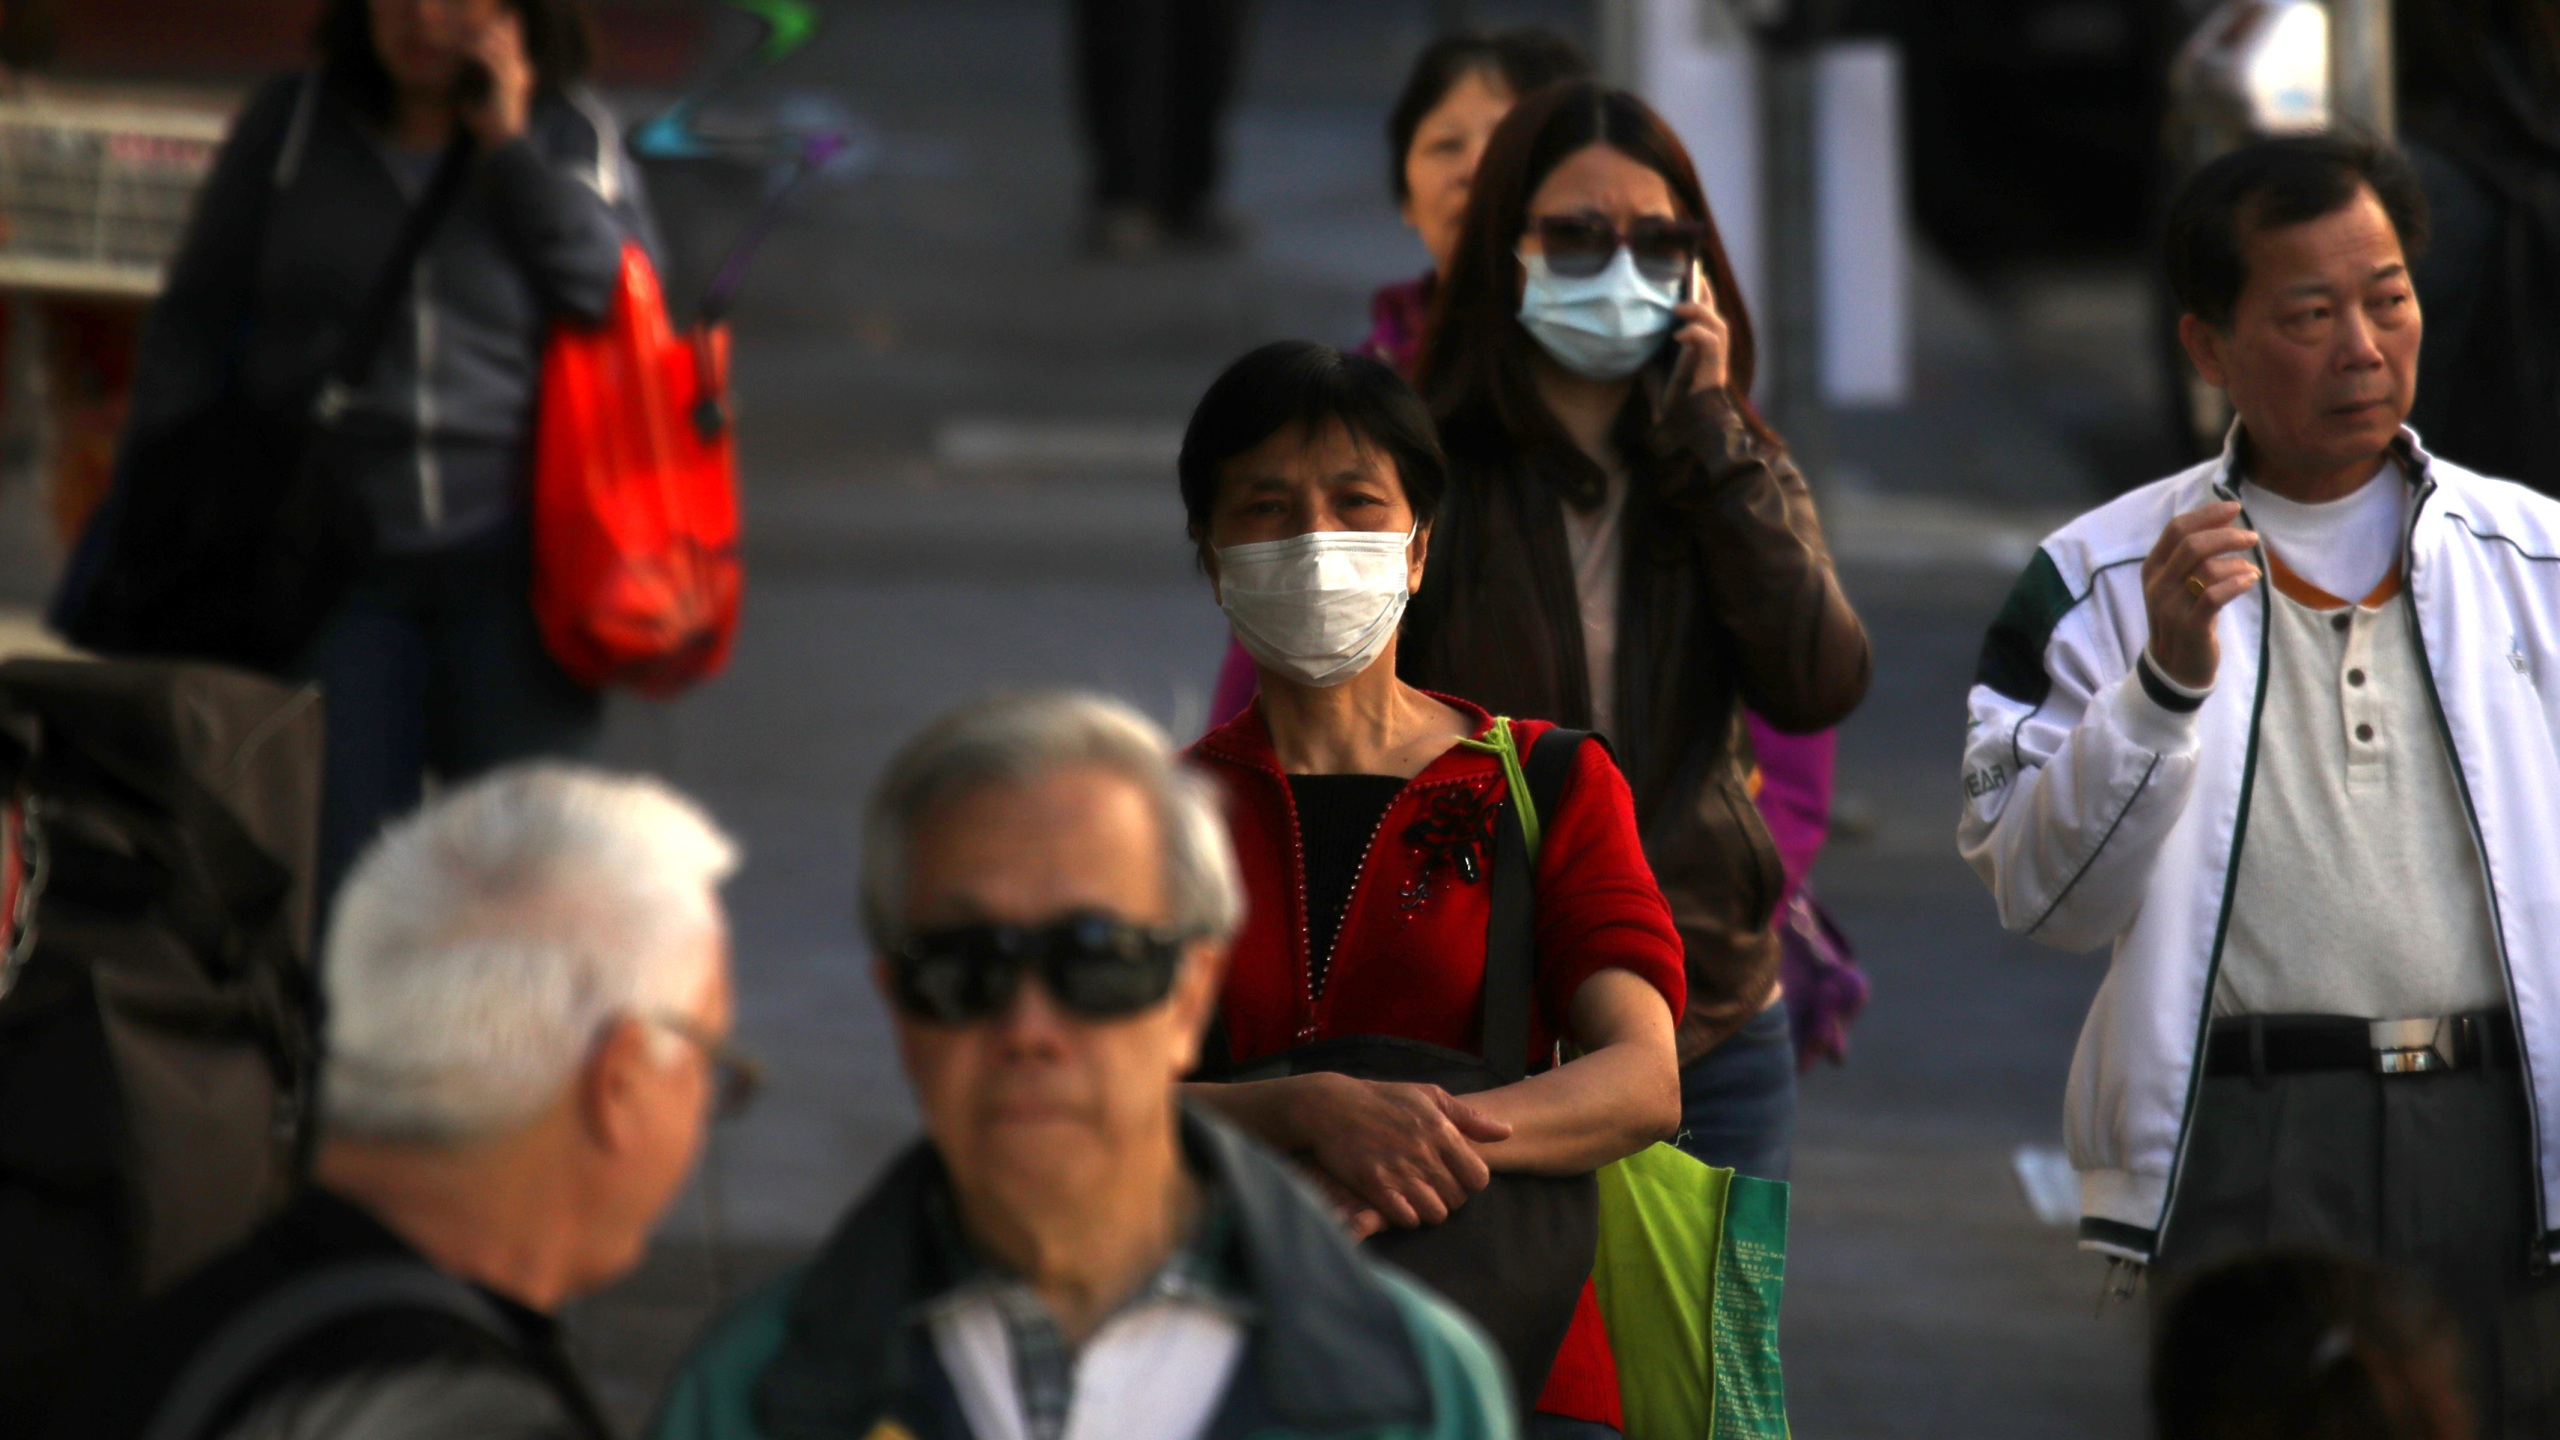 People wear surgical masks as they walk along Grant Avenue in San Francisco's Chinatown on Feb. 26, 2020. (Credit: Justin Sullivan / Getty Images)